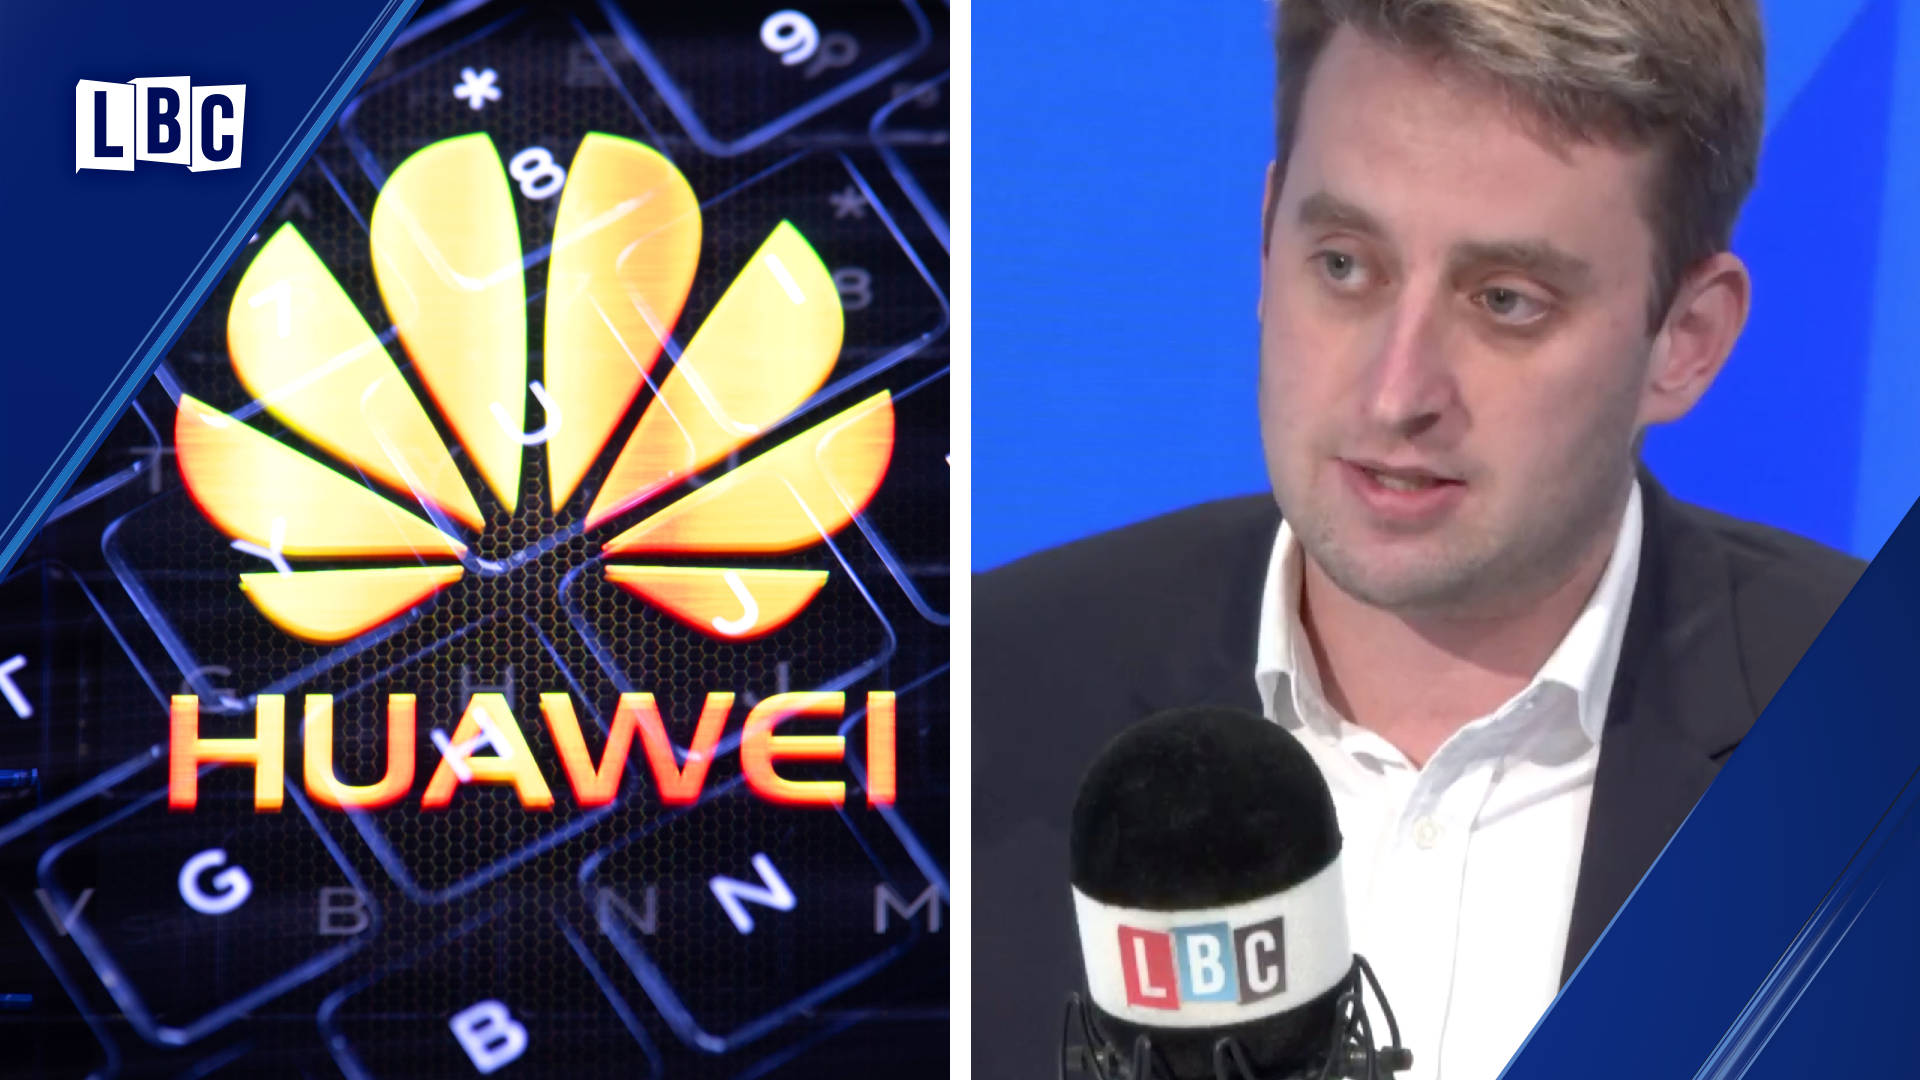 Huawei: what does Boris Johnson's 5G decision mean?